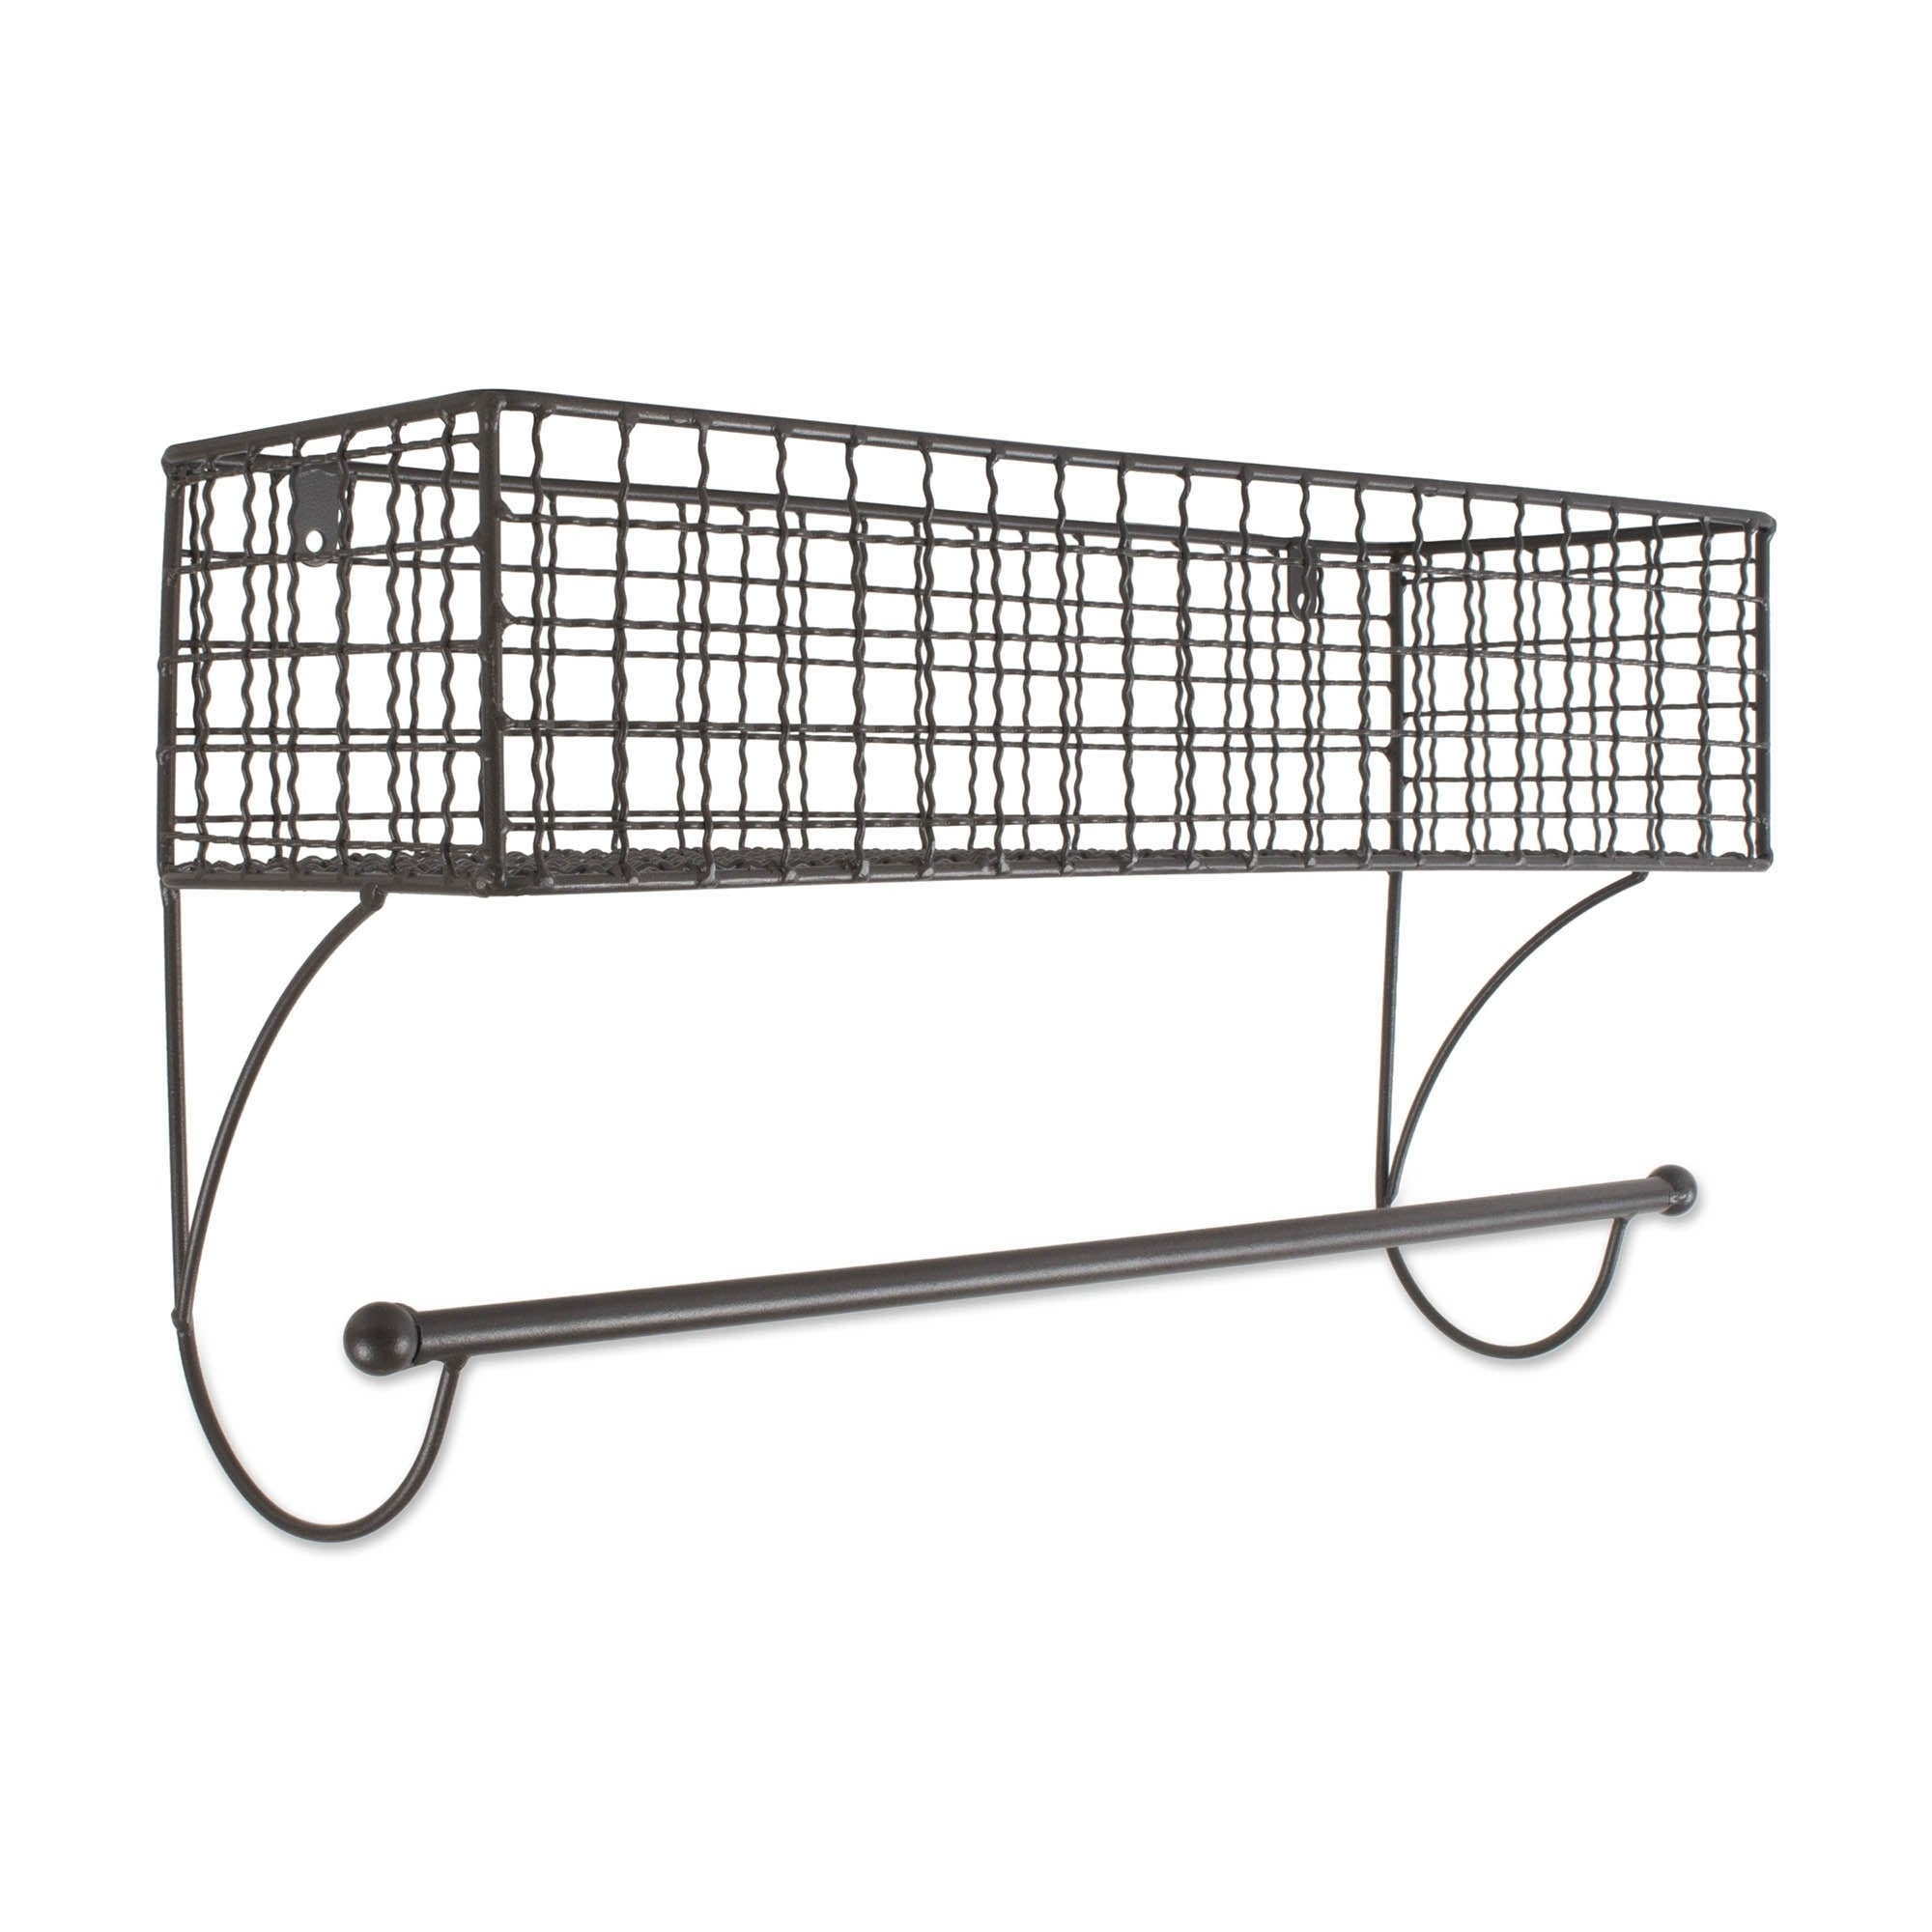 Dii Farmhouse Towel Rack Overstock 28458827